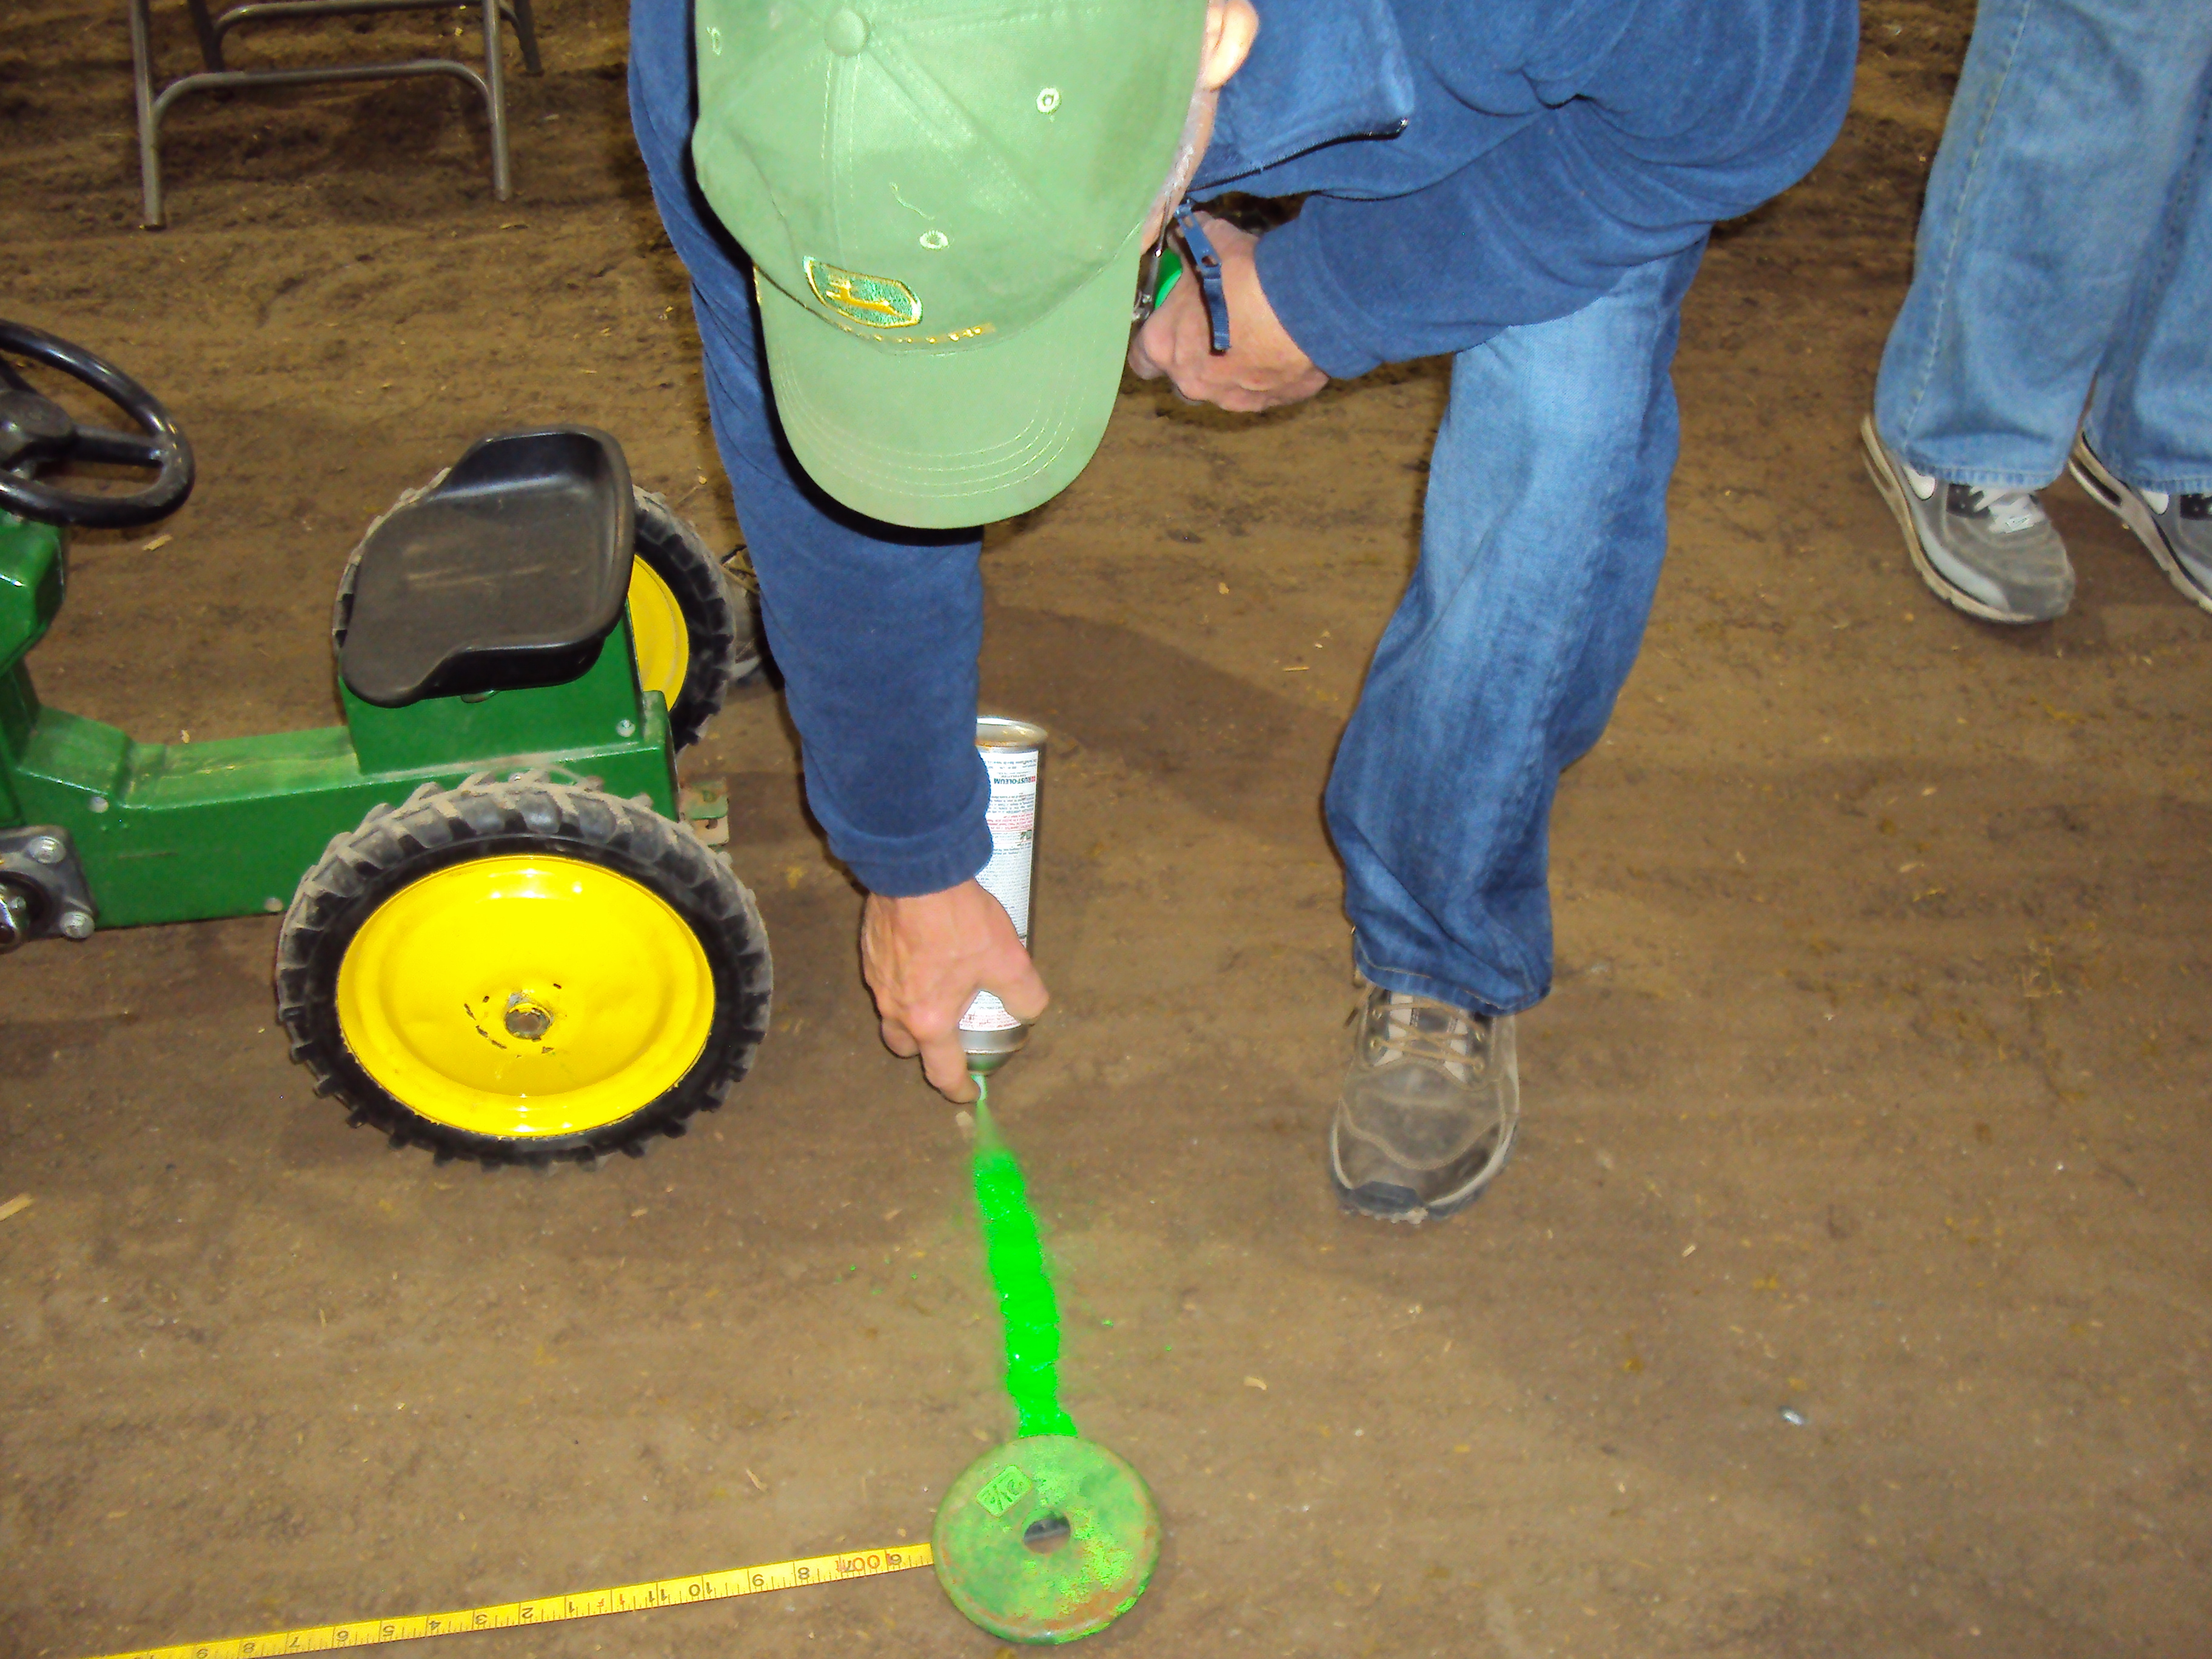 Starting line kids pedal tractor